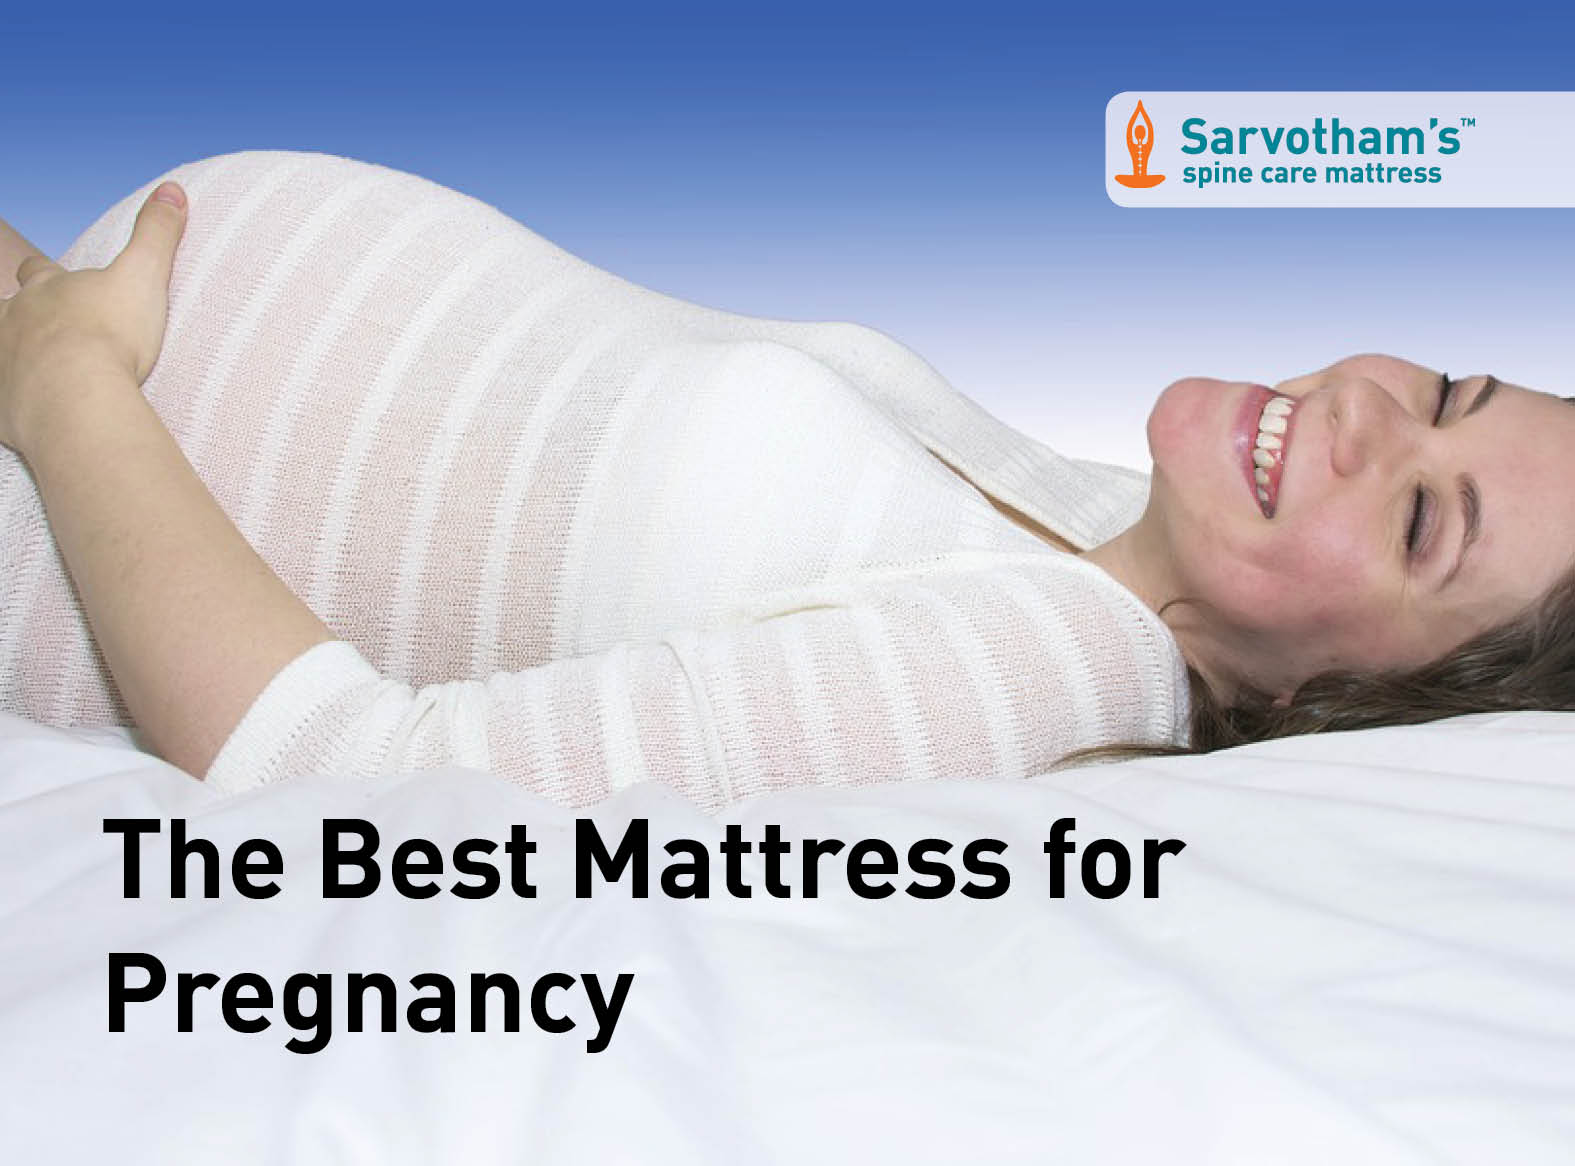 The Best Mattress for Pregnancy